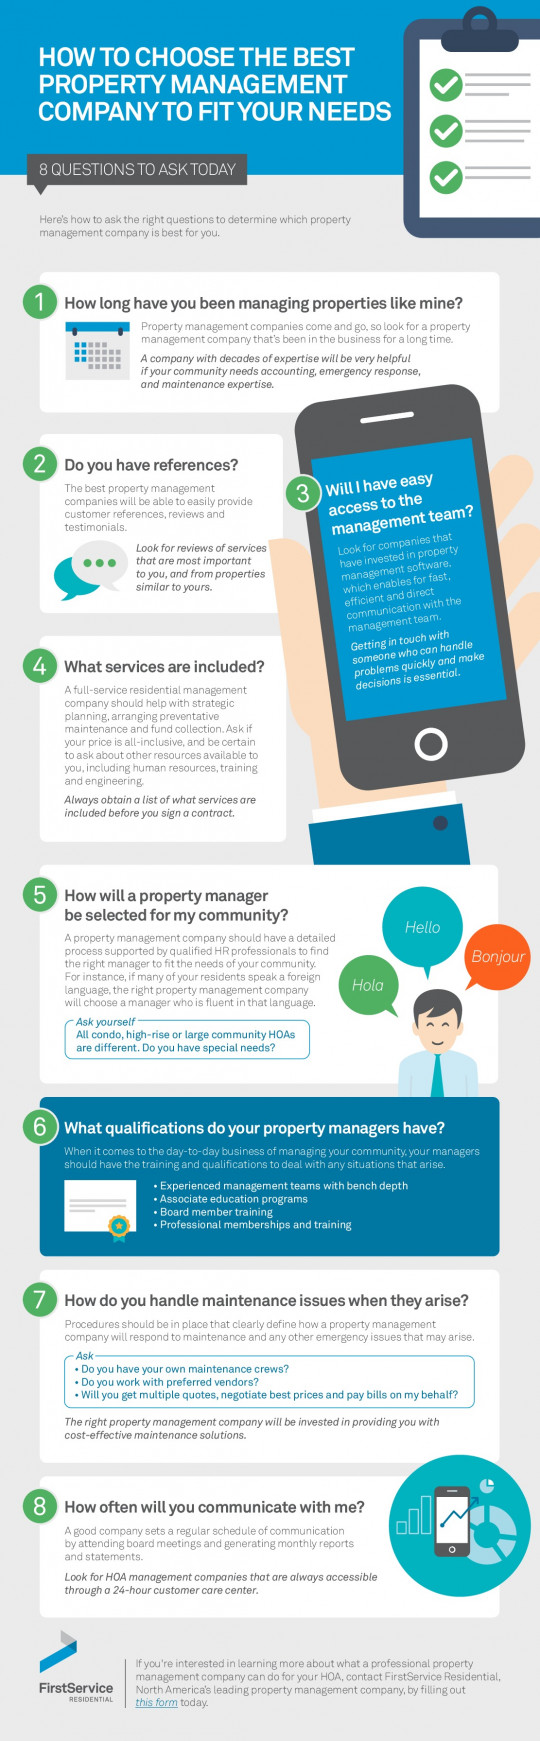 How to Choose the Best Property Management Company to Fit Your Needs